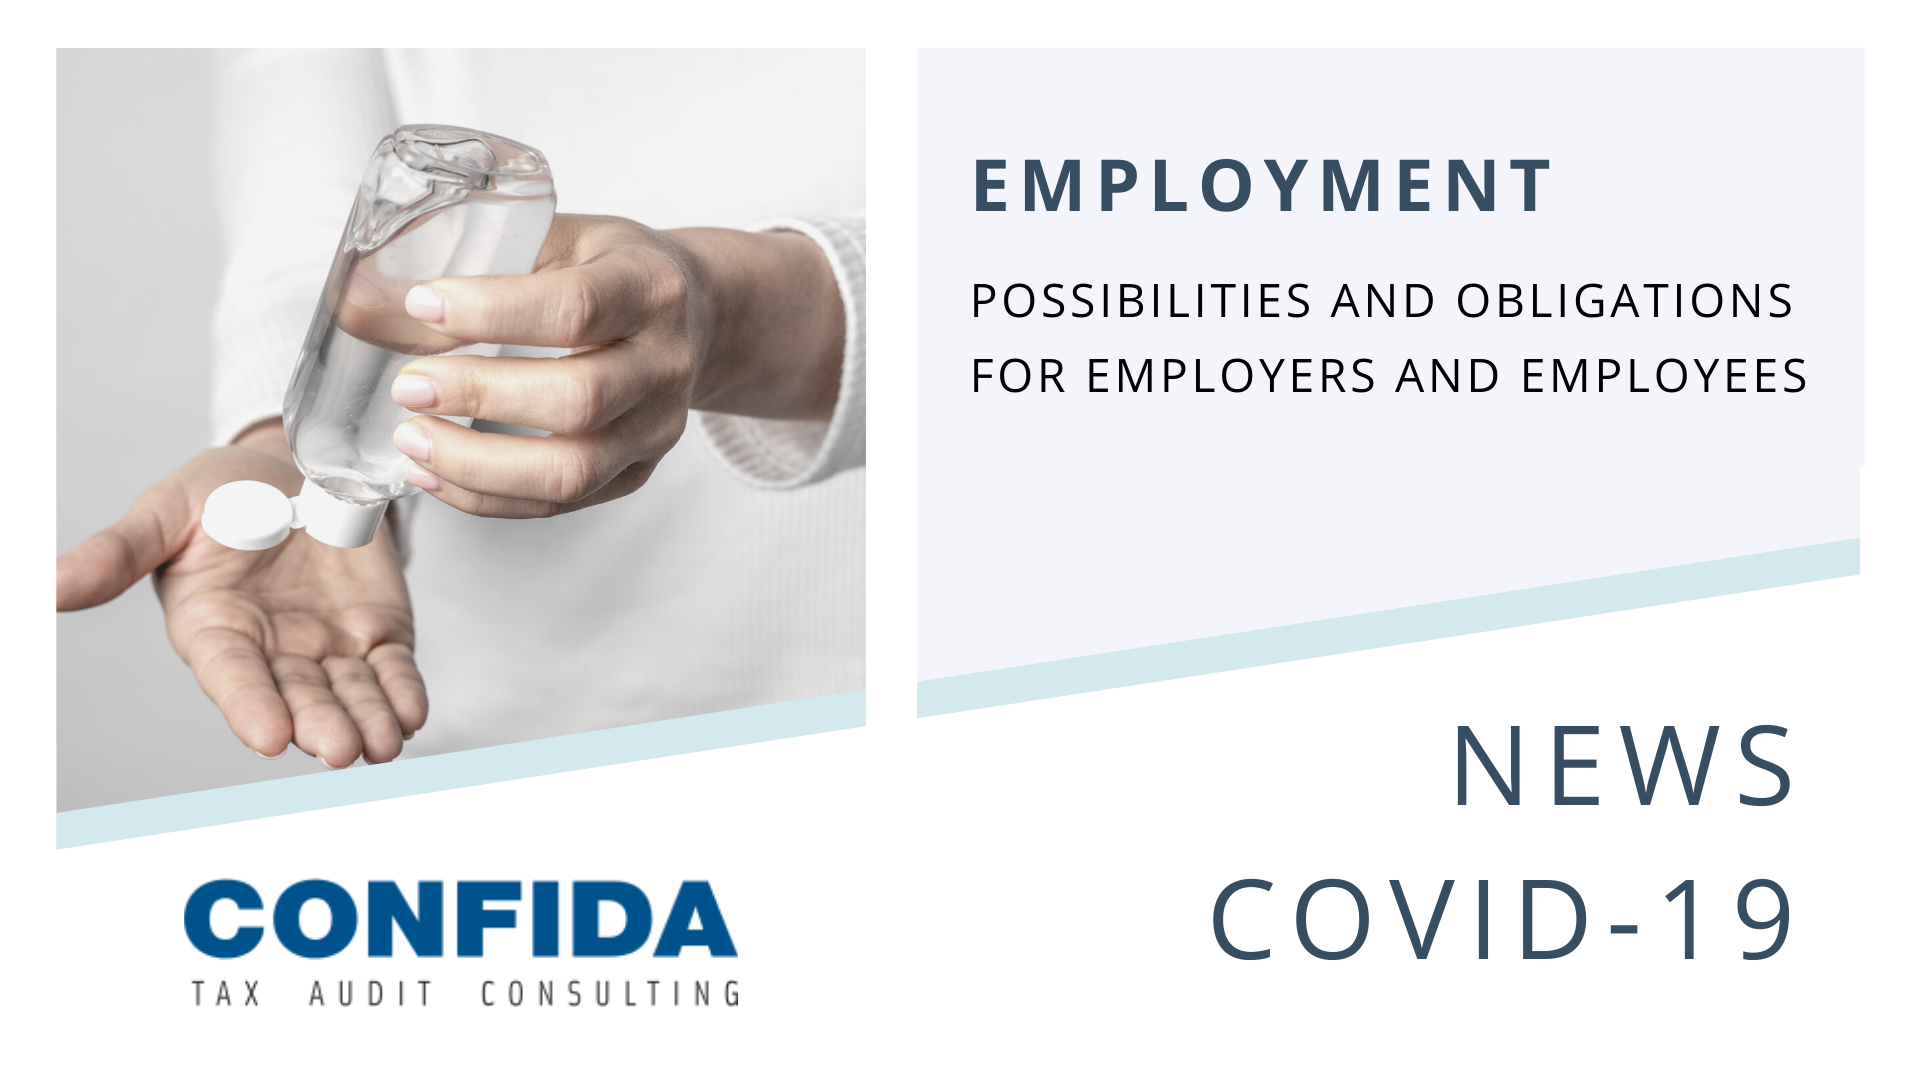 COVID-19: Employment Regulations